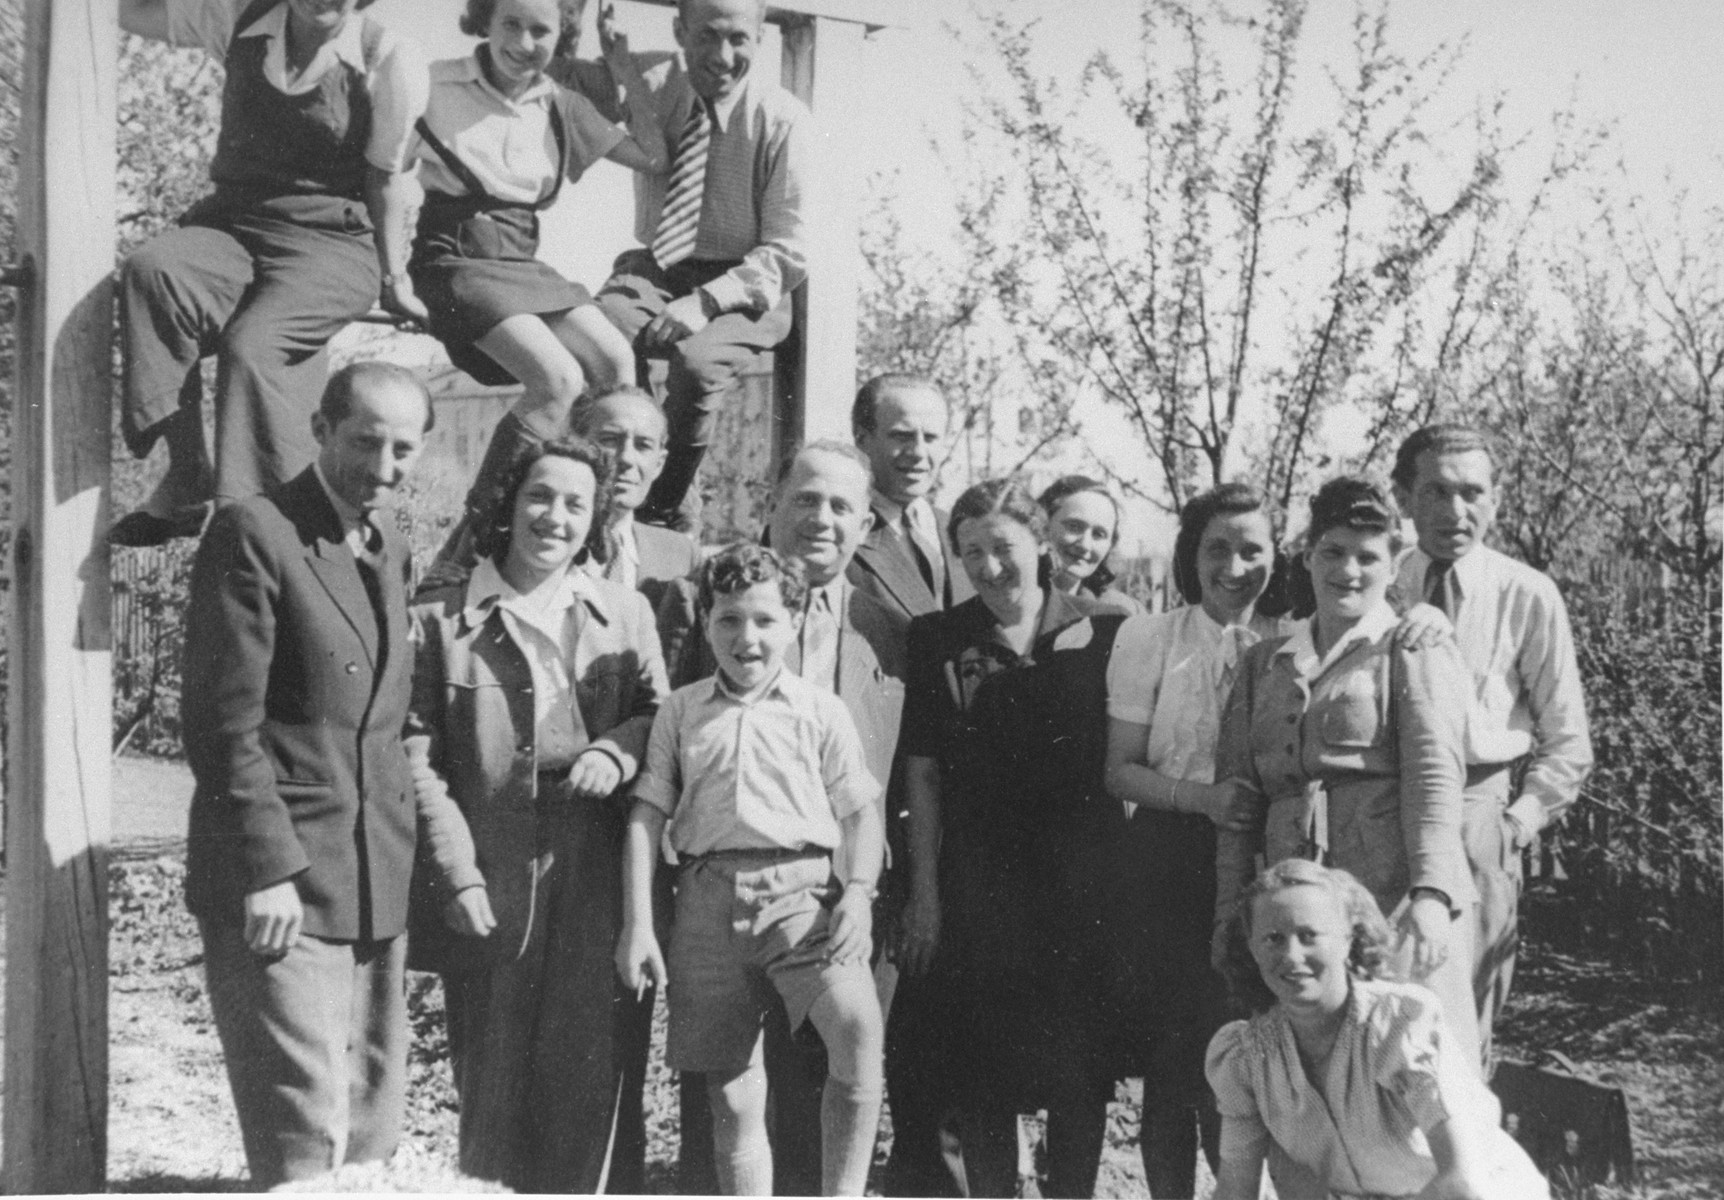 Oskar Schindler at a reunion in Munich, Germany in 1946 with Hella Kornhauser and other Schindlerjuden.